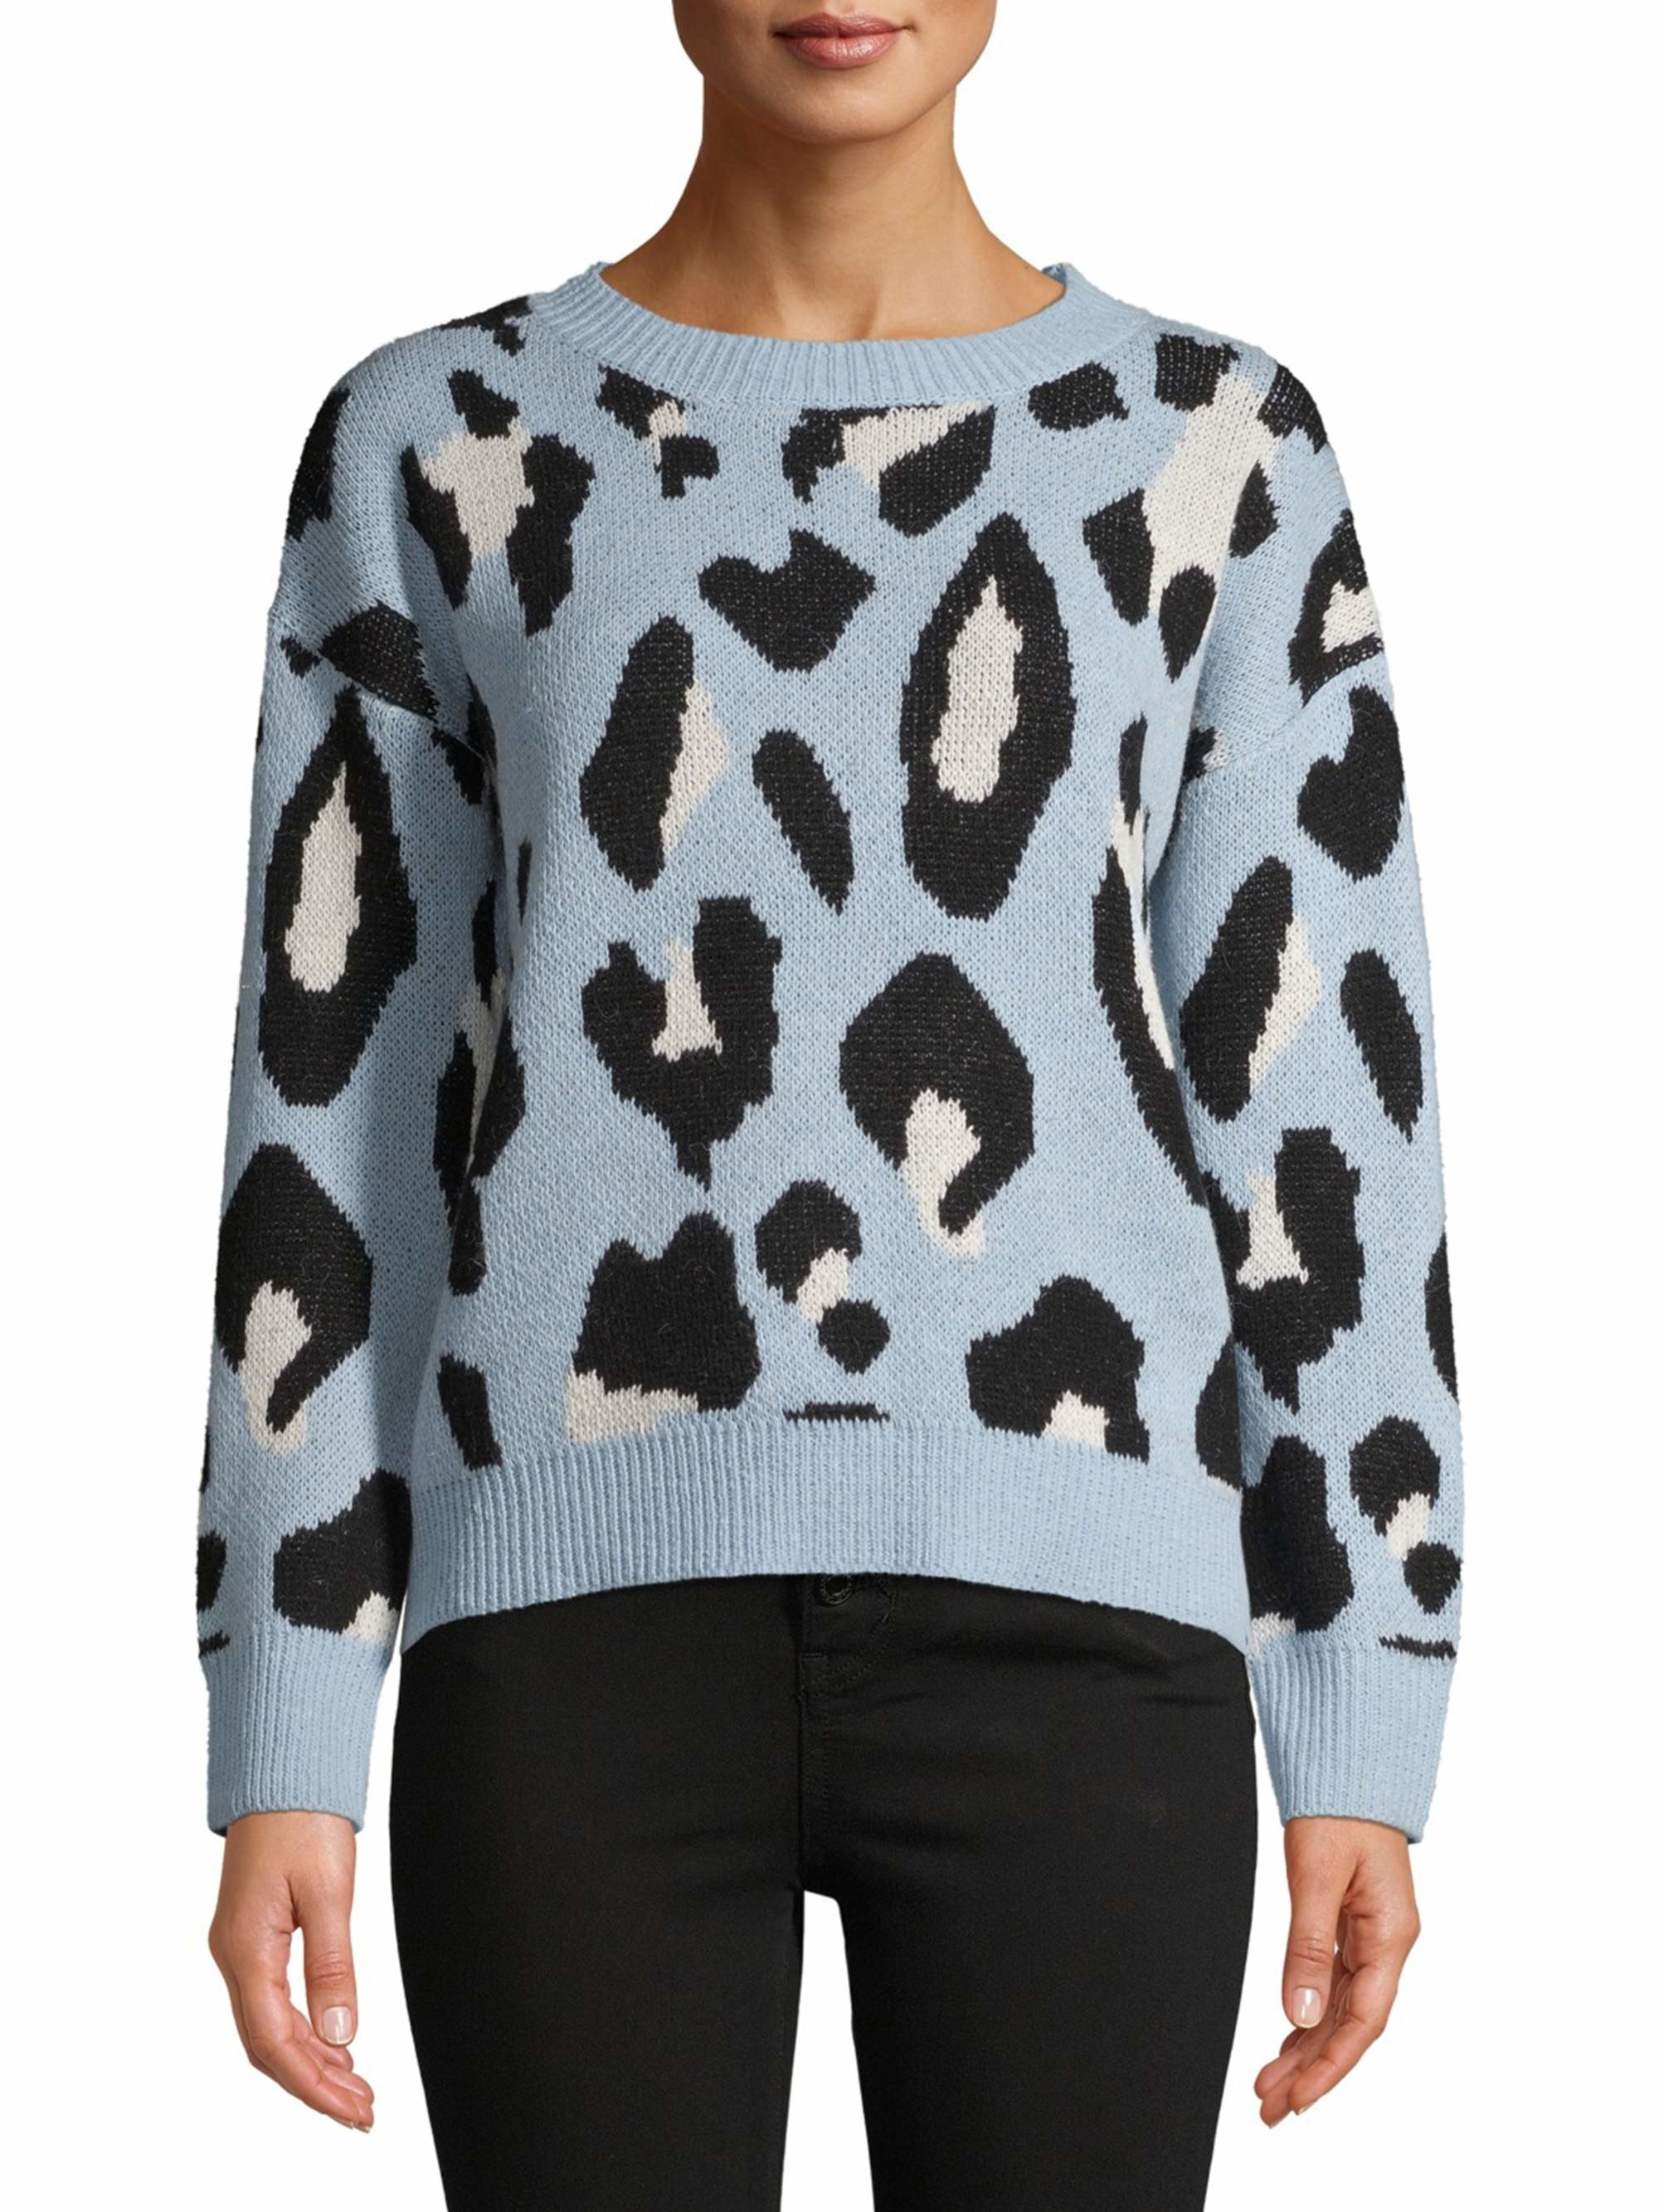 a model in the leopard print sweater in light blue with black and white spots